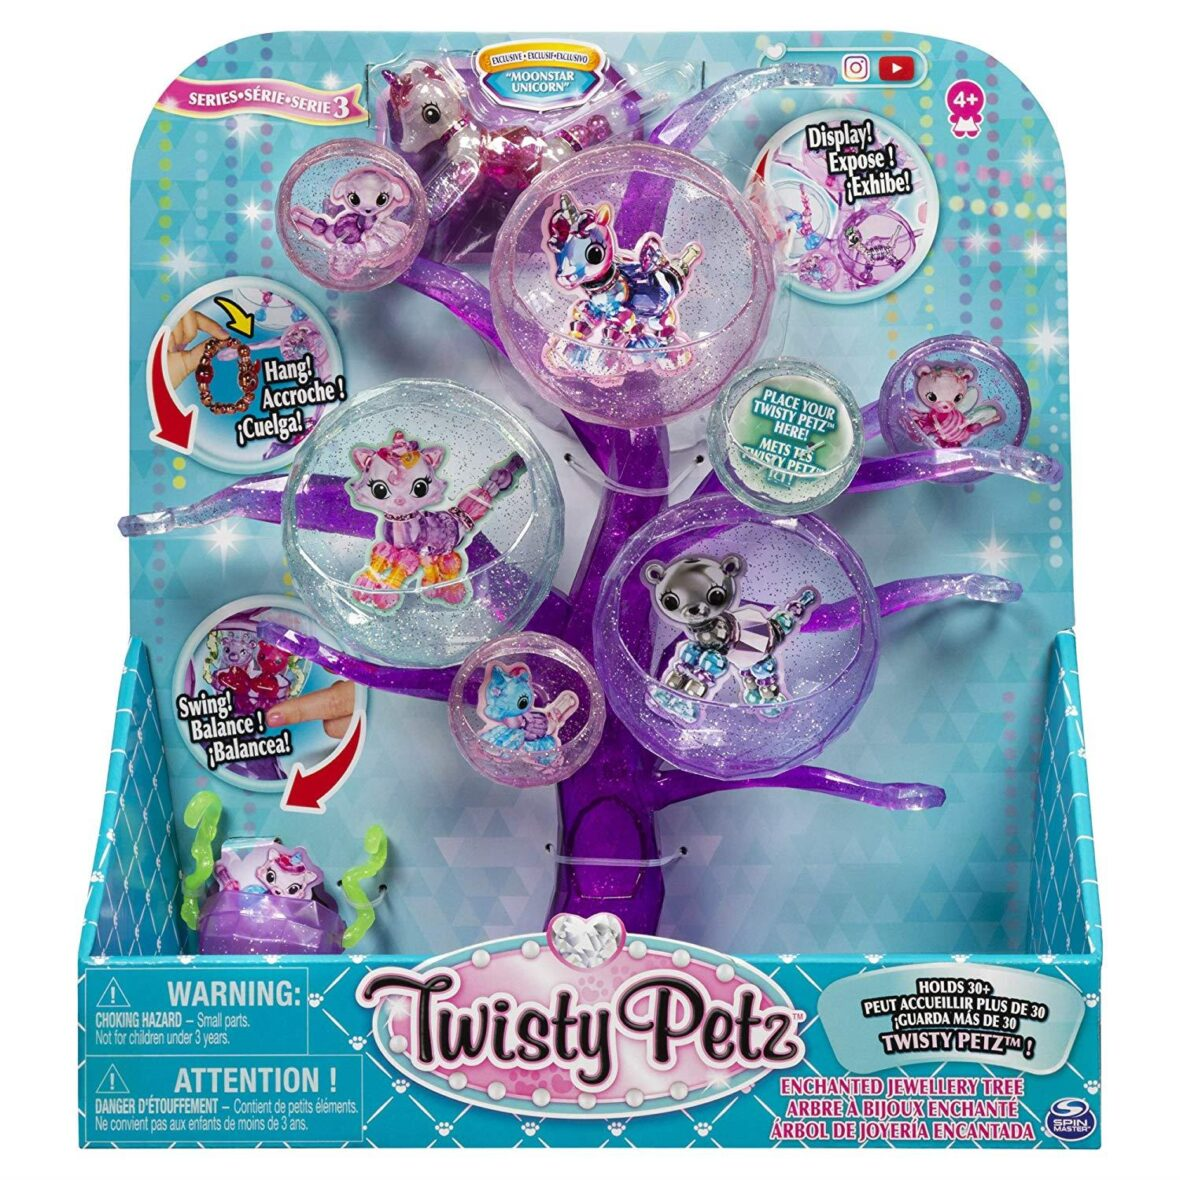 SPIN MASTER Twisty Petz 6053562 Series 3, Enchanted Jewellery Tree With Exclusive Collectible Bracelet